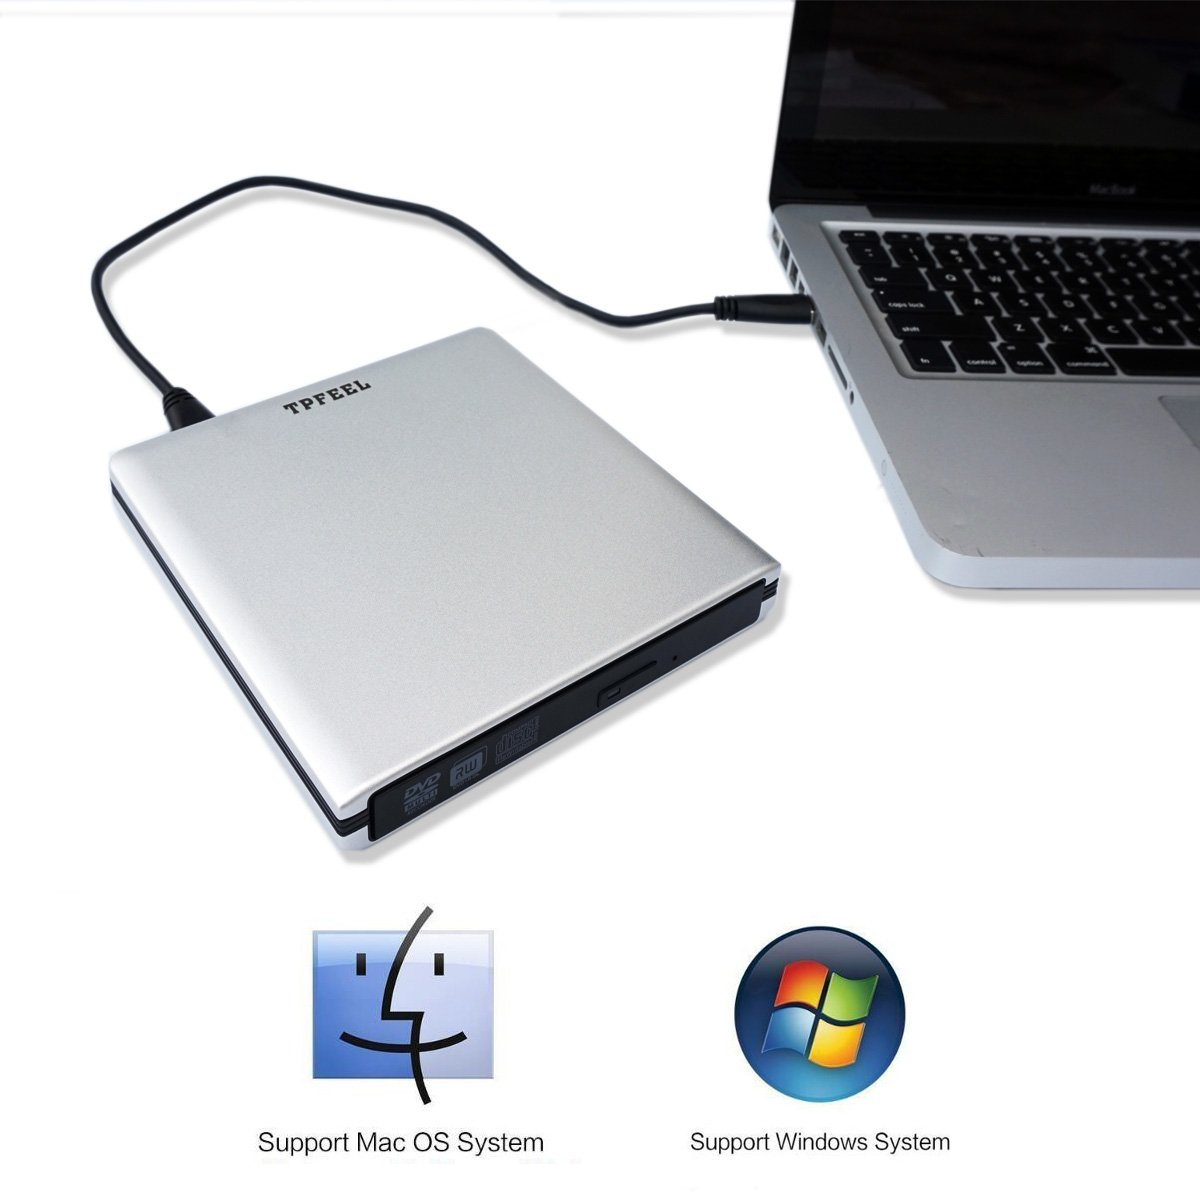 External USB3.0 USB C Lightscribe DVD CD Burner Drive,TPfeel Aluminum Portable Type-C USB-C CD/DVD-RW Burner Lightscribe Writer Player for Apple iMac MacBook and All Laptop Desktop